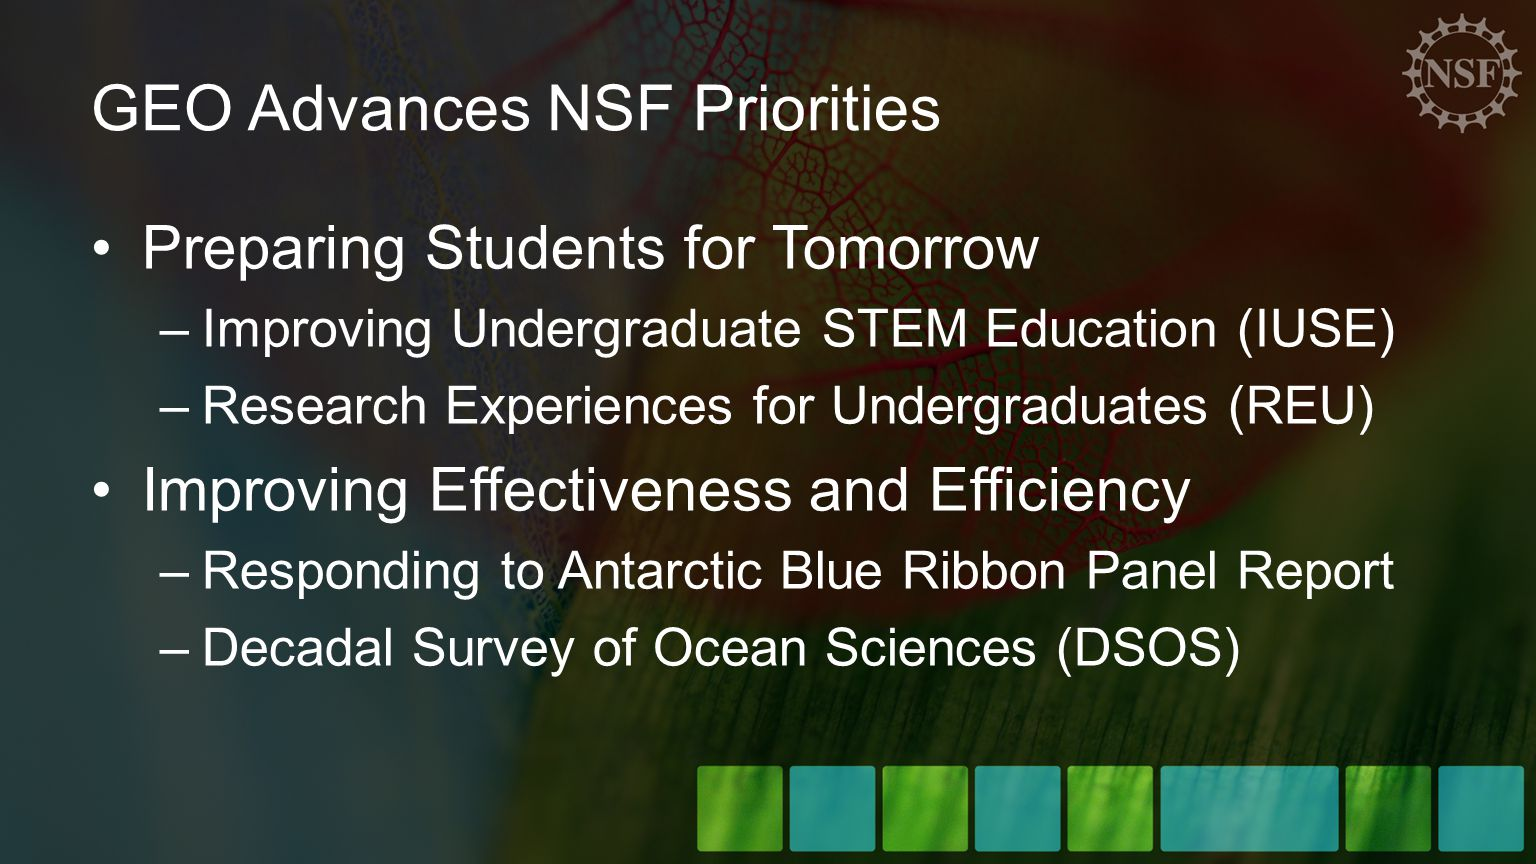 GEO Advances NSF Priorities Preparing Students for Tomorrow –Improving Undergraduate STEM Education (IUSE) –Research Experiences for Undergraduates (REU) Improving Effectiveness and Efficiency –Responding to Antarctic Blue Ribbon Panel Report –Decadal Survey of Ocean Sciences (DSOS)